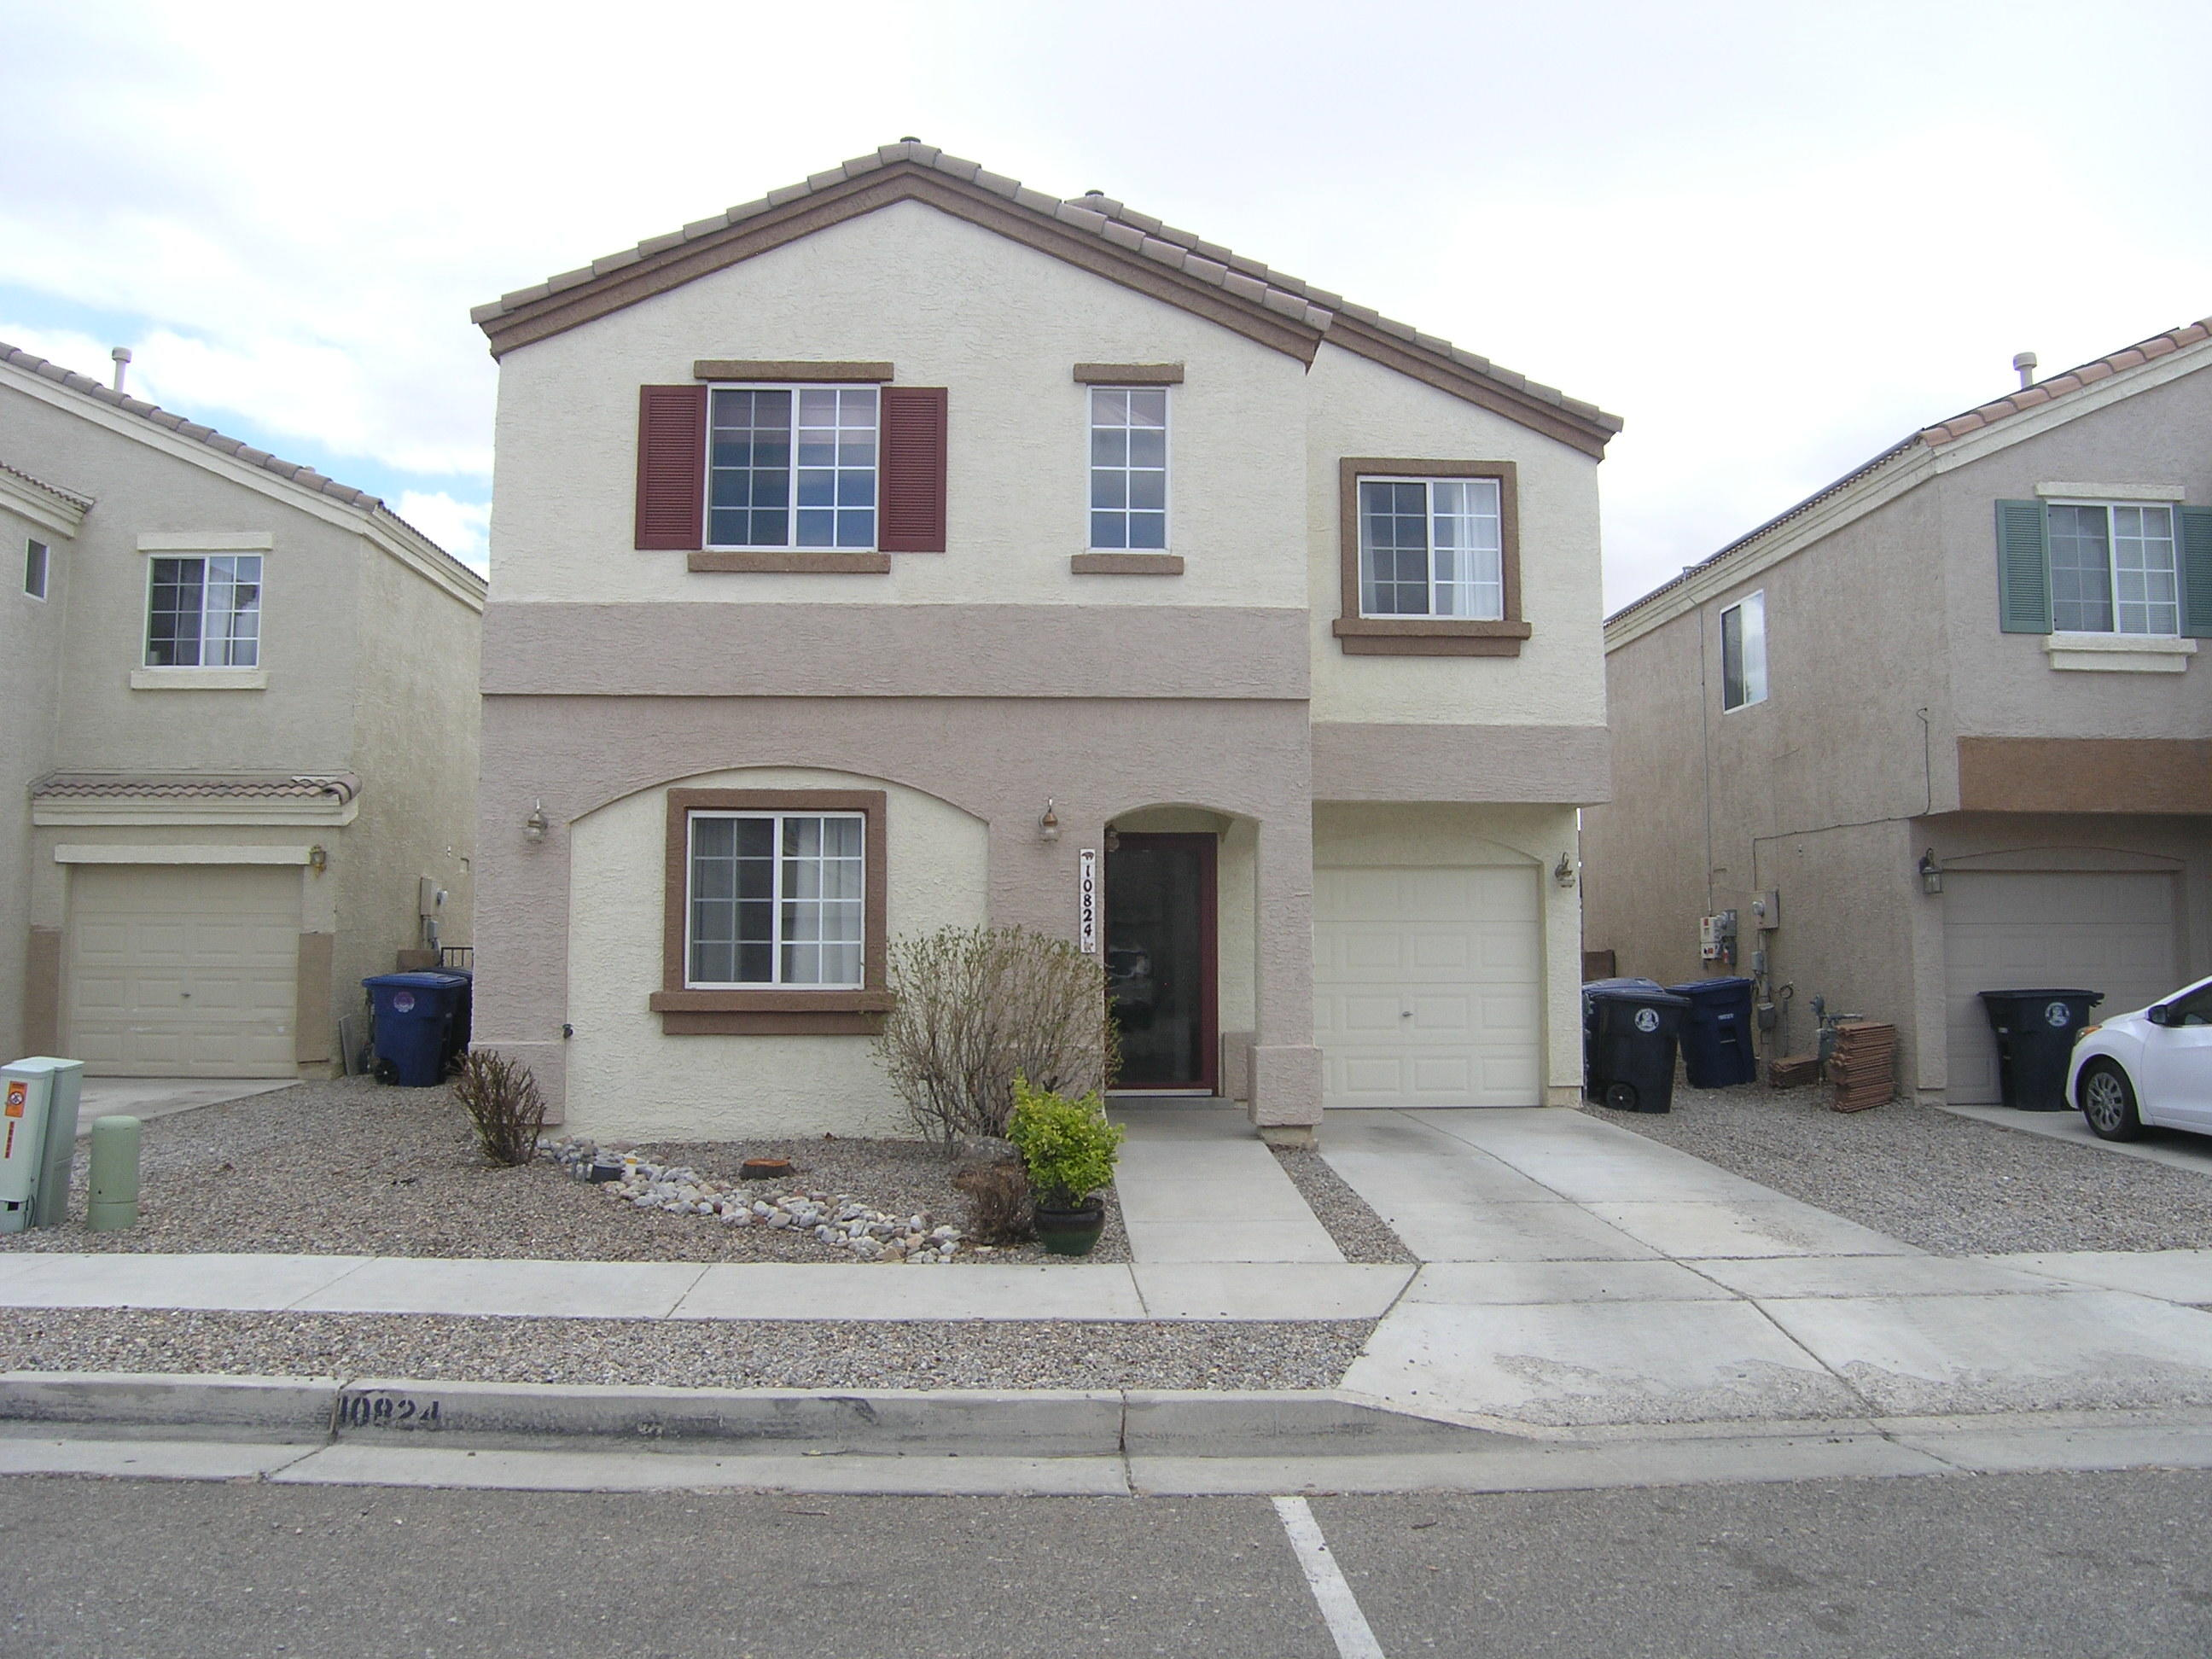 Your buyers will love this light and bright move in ready home located within minutes of Kirtland AFB, Sandia Labs, Costco, Manzano Mesa Elementary, and Manzano Mesa Mulitgenerational Center. Enter and you are greeted by plenty of sunlight and gleaming bamboo floors. Walkthrough the large downstairs living area to view the new appliances in the kitchen.  There is a bedroom downstairs that would also work well as a home office. Uptstairs features new carpet and an oversized loft/second living area with three additional bedrooms. The master has views of the park that adjoins the back of the home and provides additional privacy. The high end washer and dryer located upstairs convey with the property. The backyard is spacious with a metal covered patio area. The home has refrigerated air